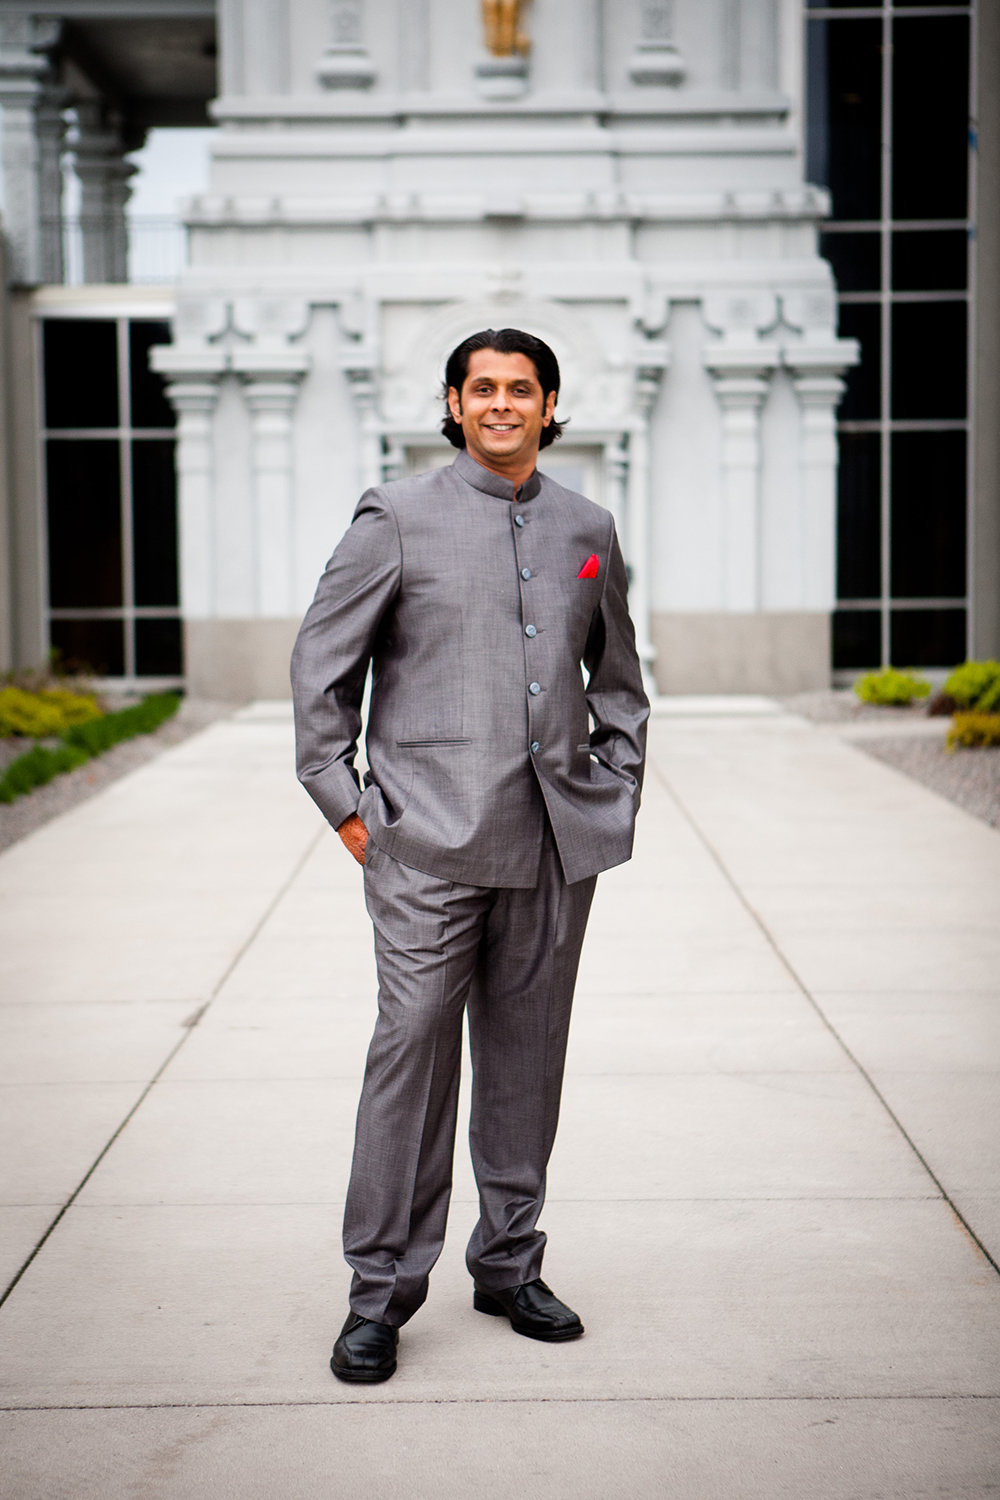 Indian groom in a stylish modern suit before his wedding